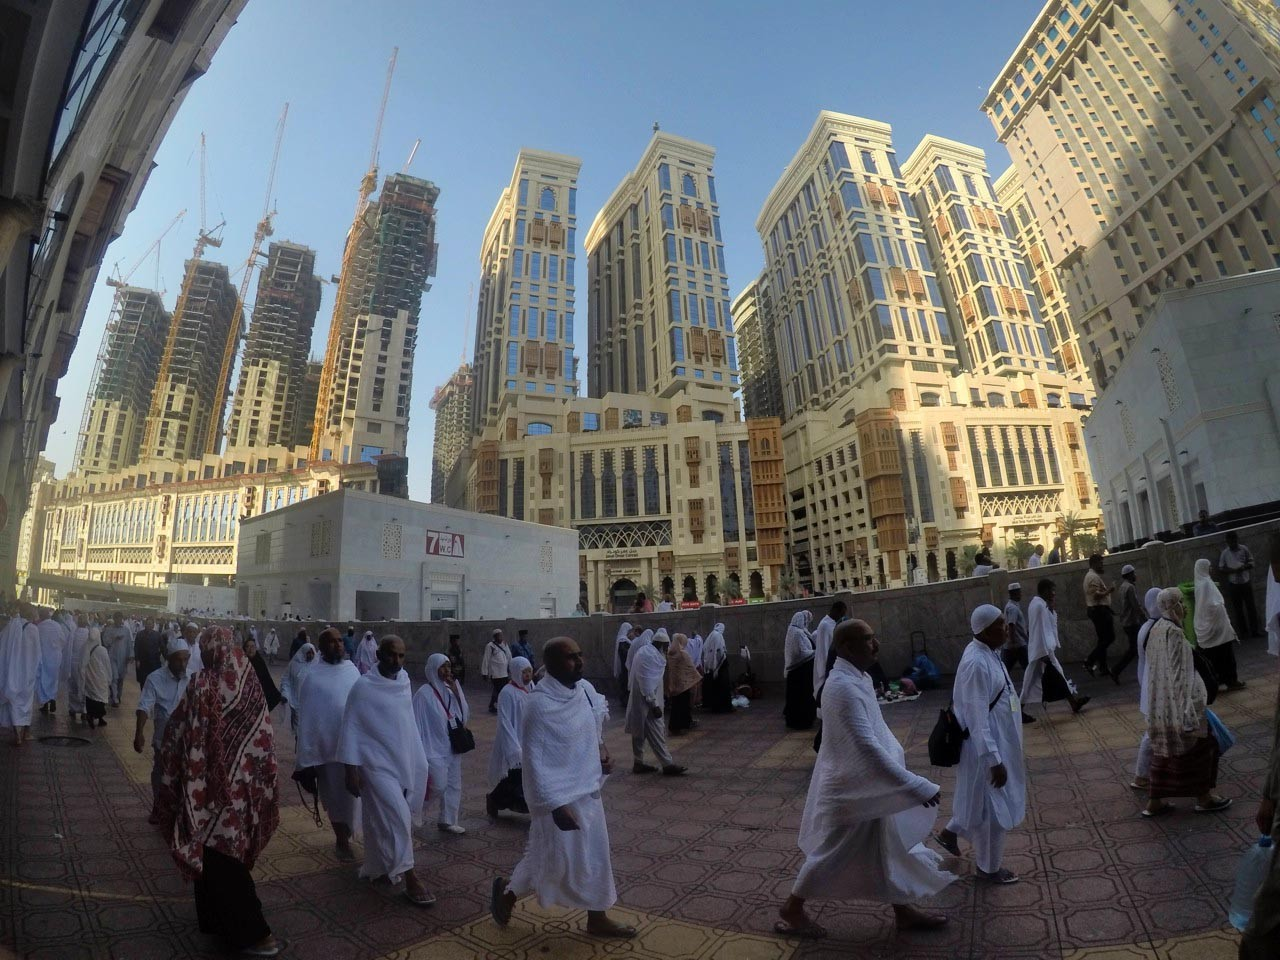 Rising up: New high-rise buildings loom in Mecca as the city is increasing its capacity to accommodate more pilgrims. The Saudi monarchy plans to welcome some 30 million pilgrims a year, both for the haj and the year-round umrah, by 2030. JP/Endy M Bayuni